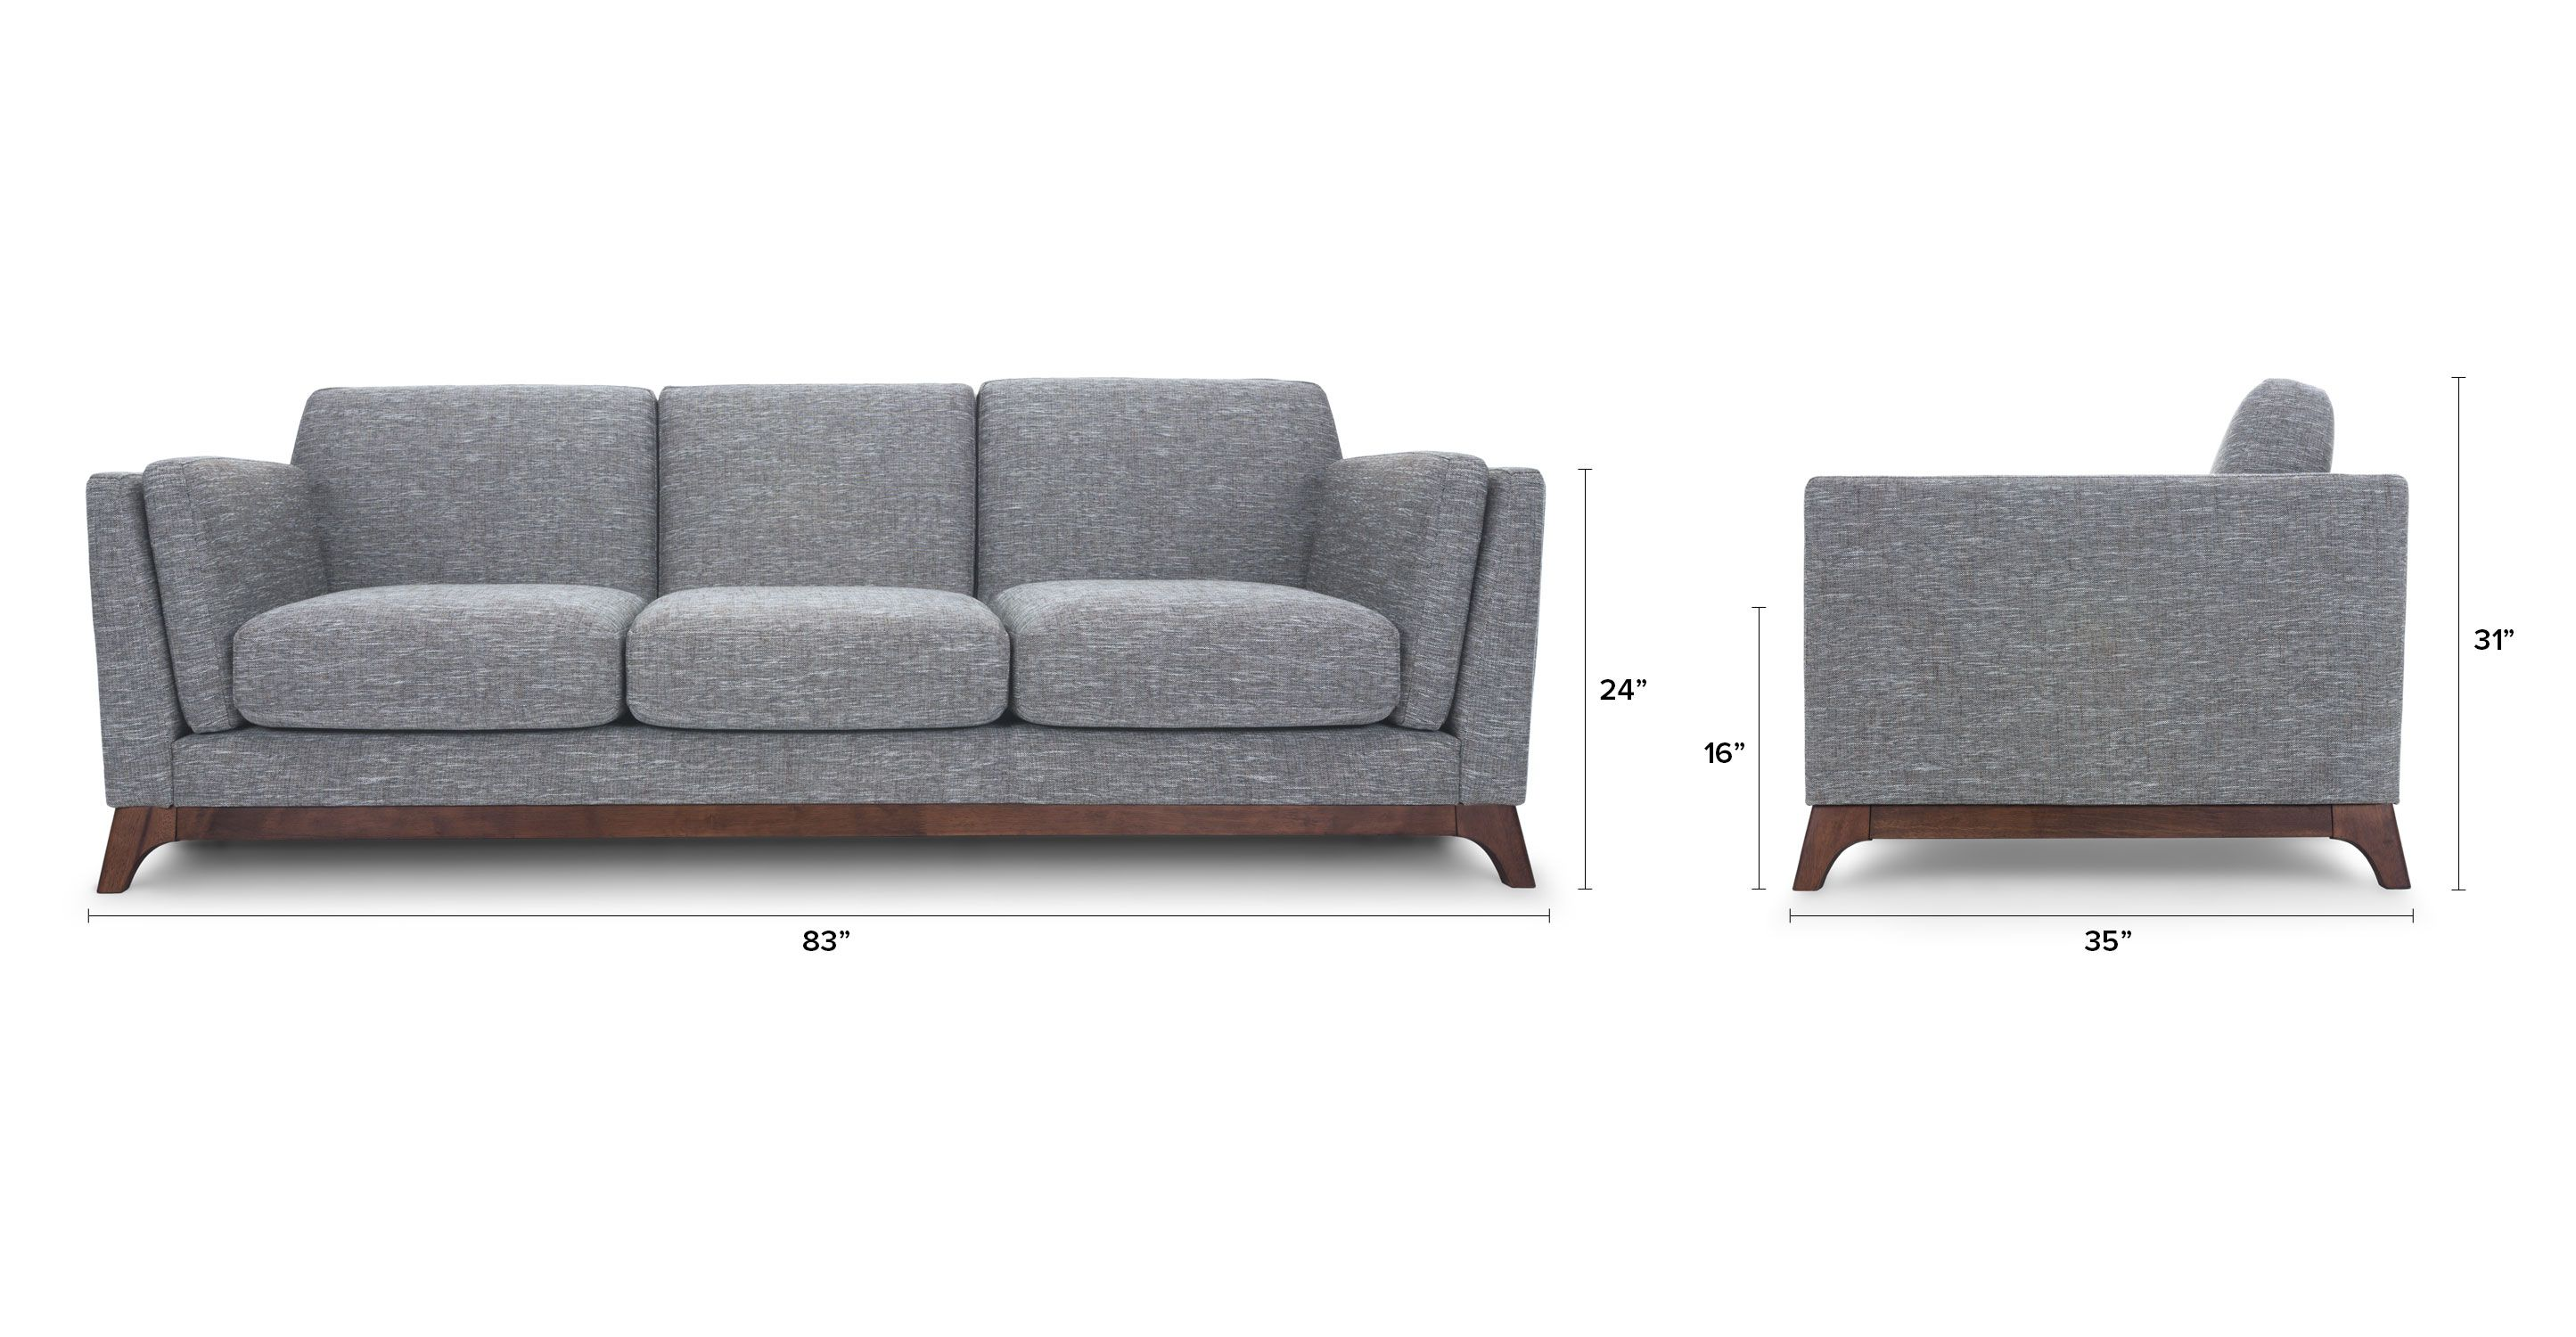 Gray Sofa 3 Seater With Solid Wood